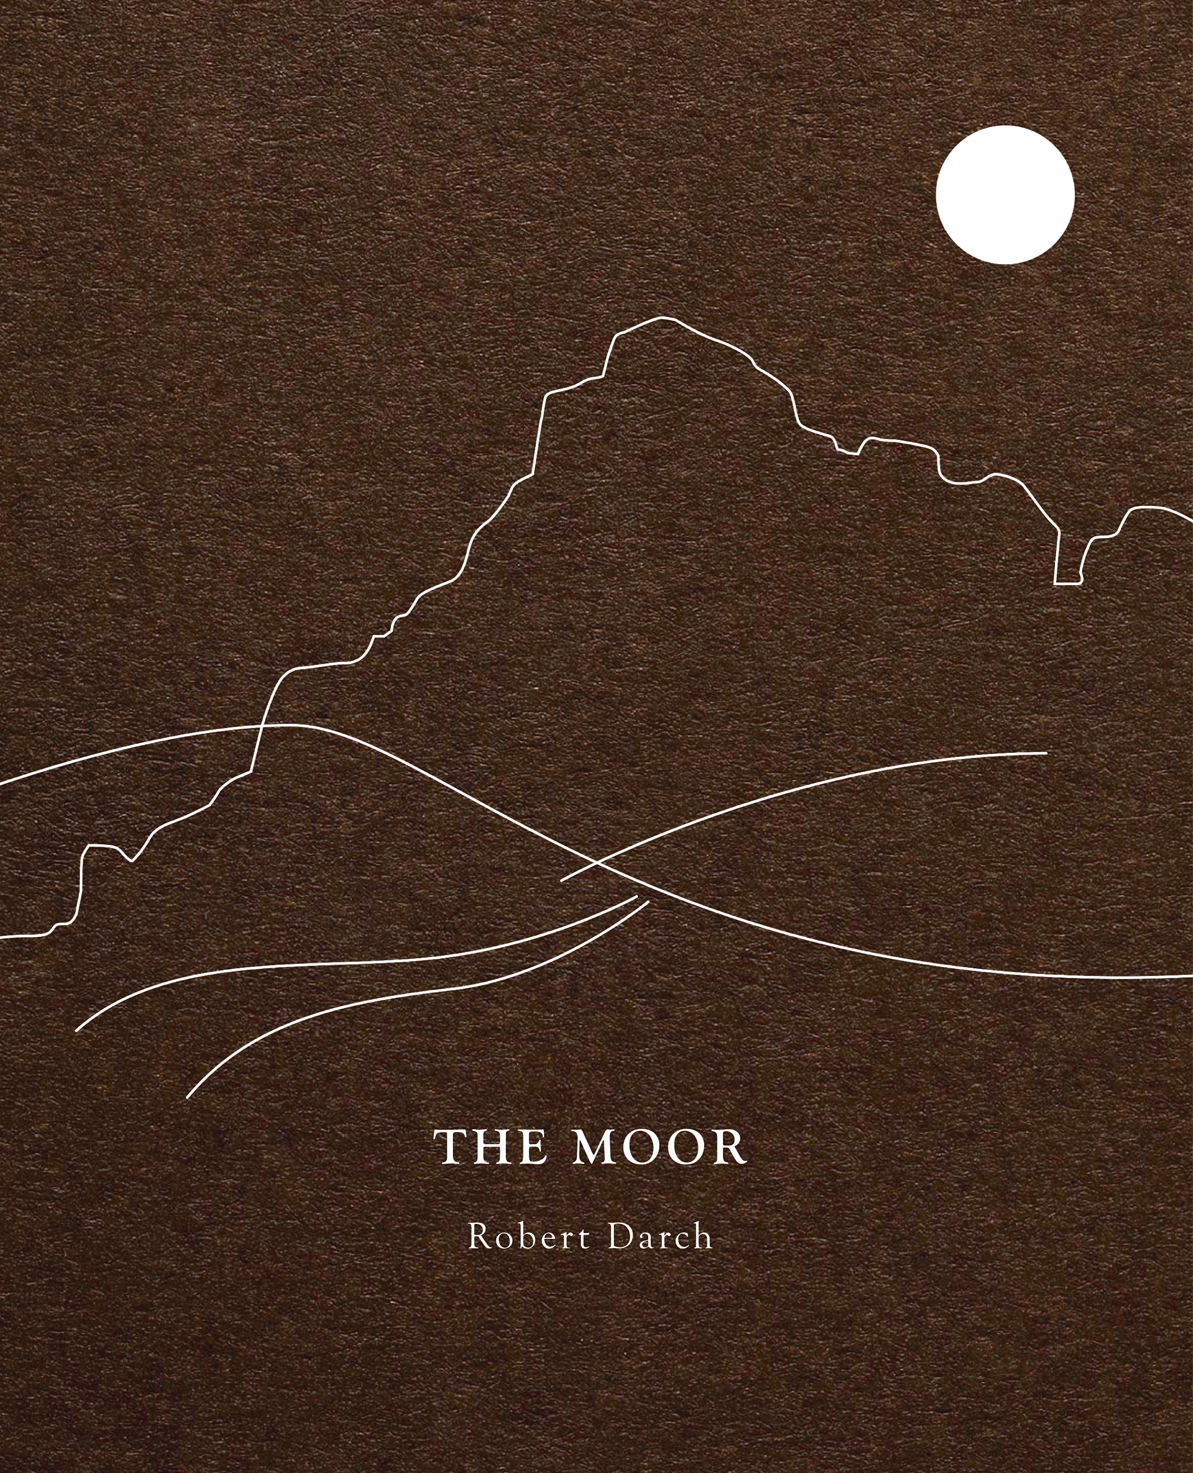 The_Moor_Robert_Darch.jpg